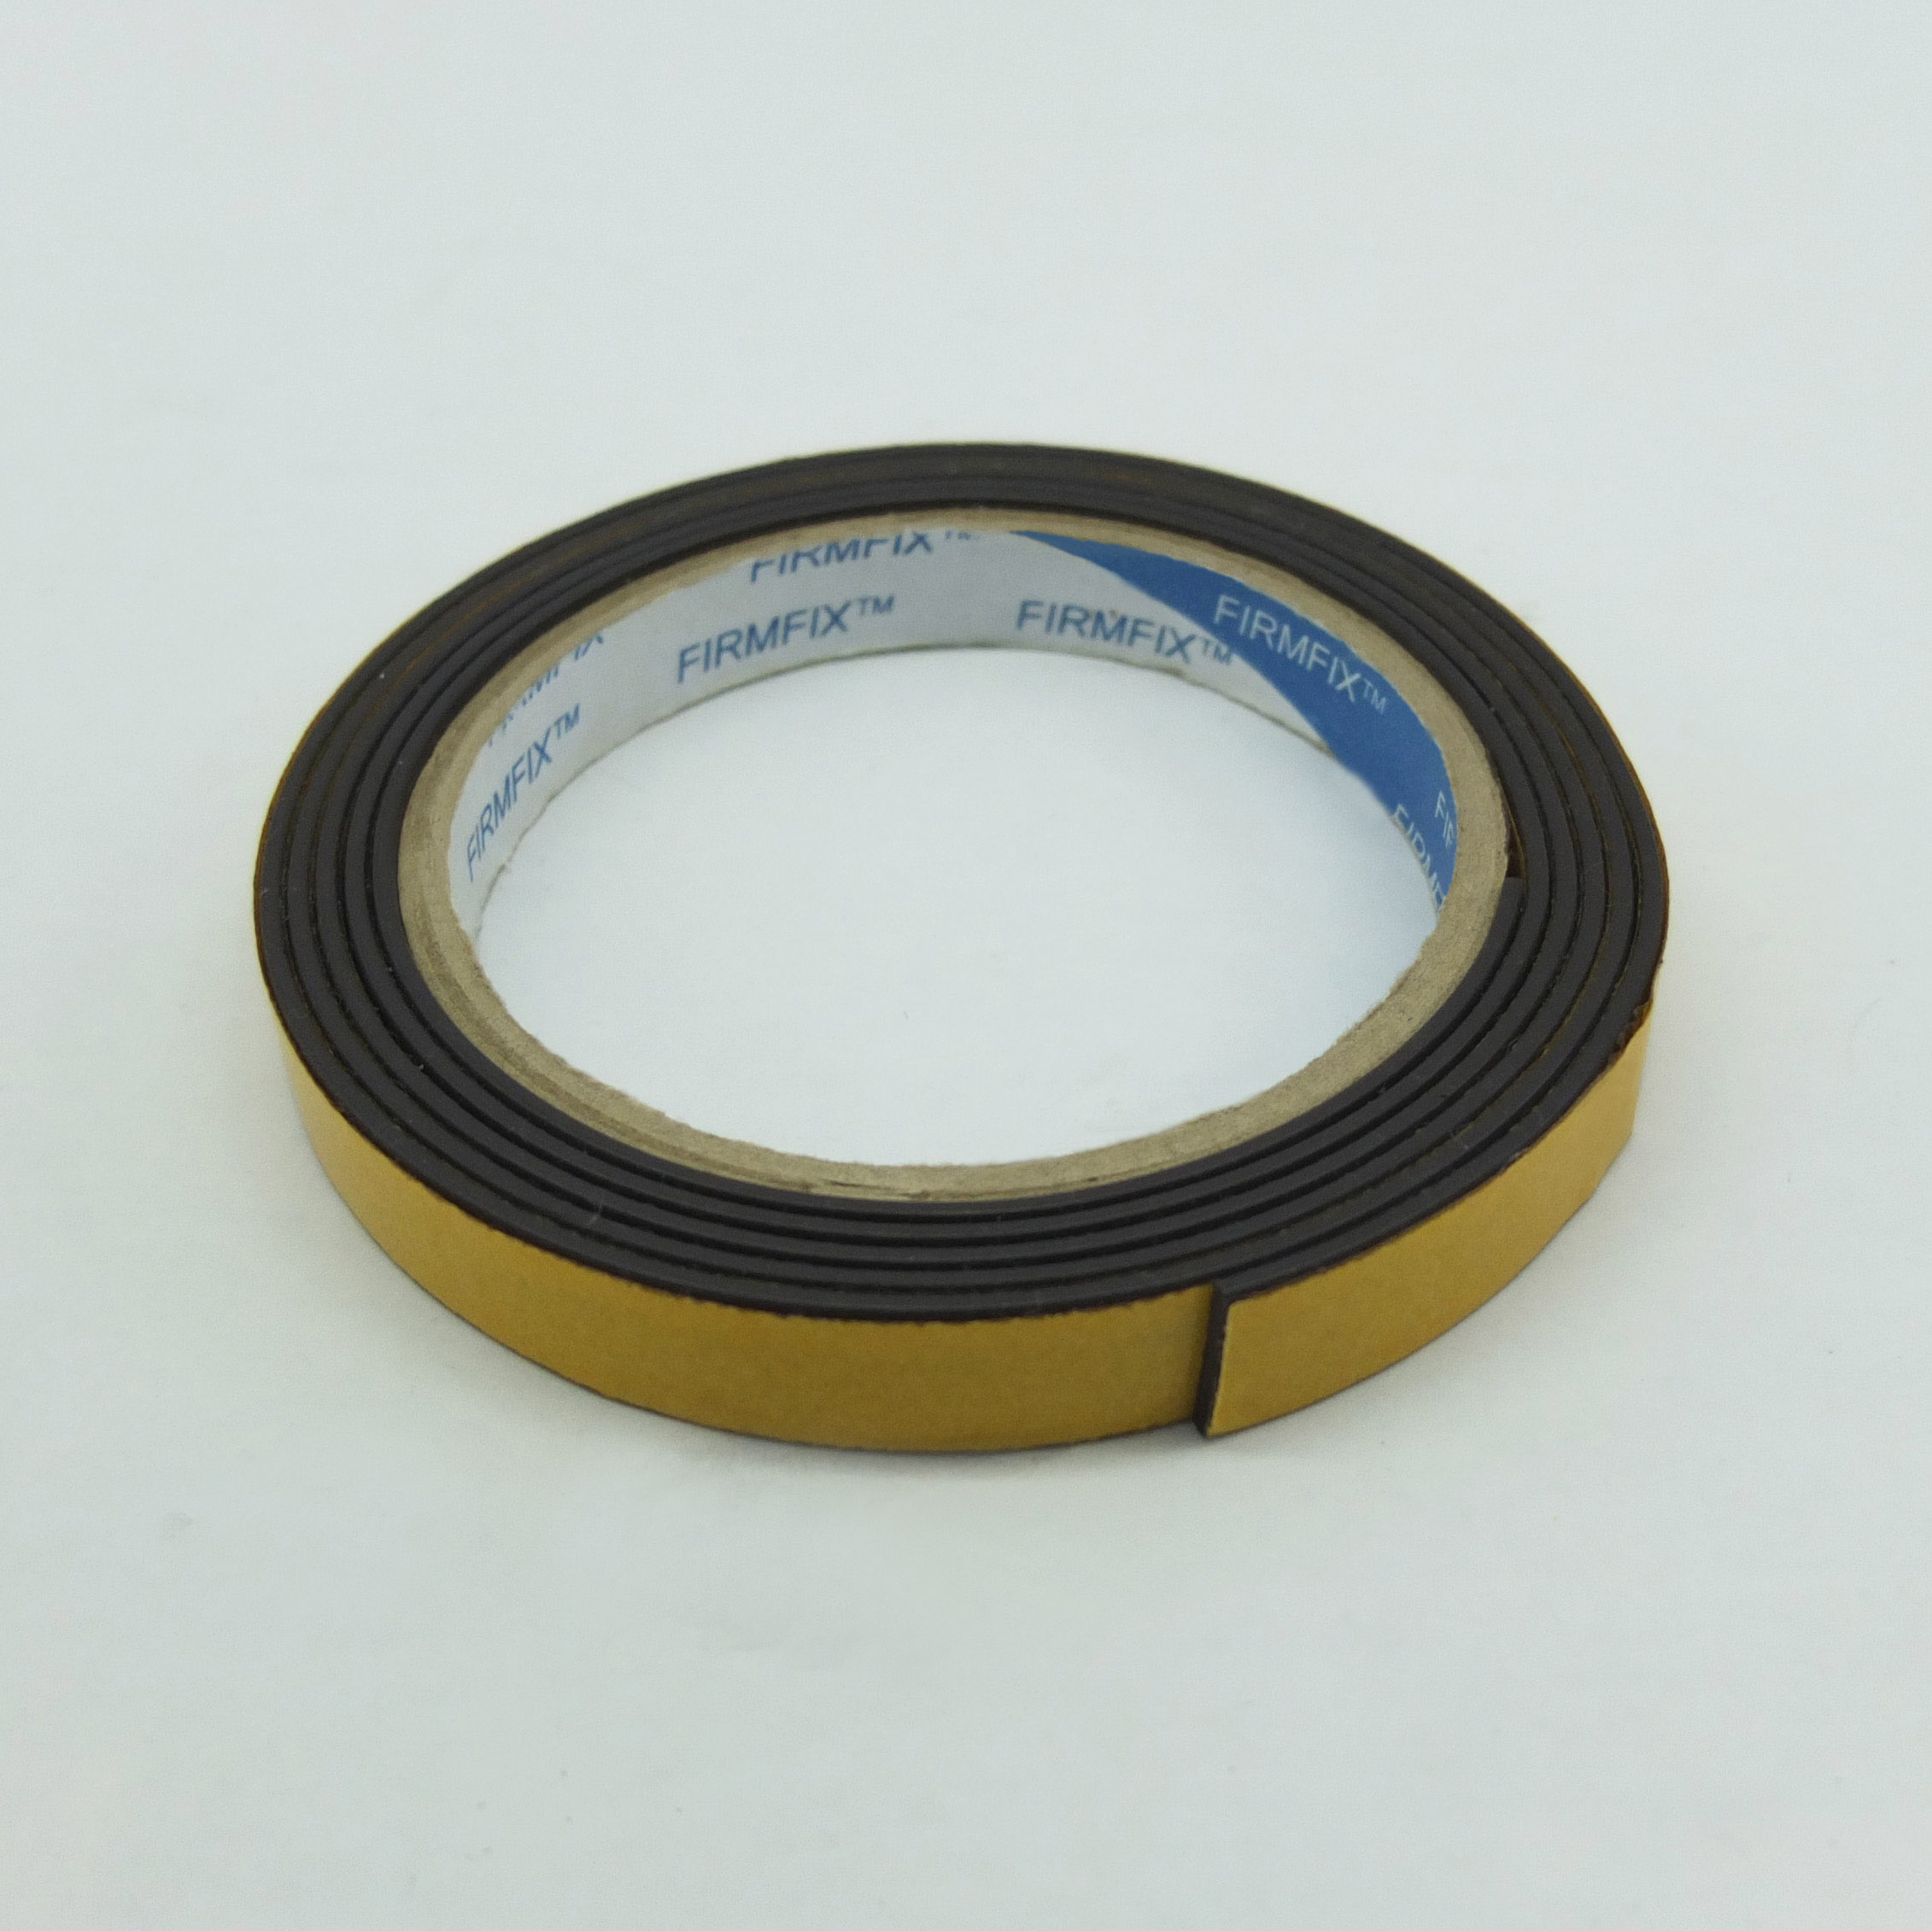 FIRMFIX Flexible Magnetic Tape / Magnet Tape